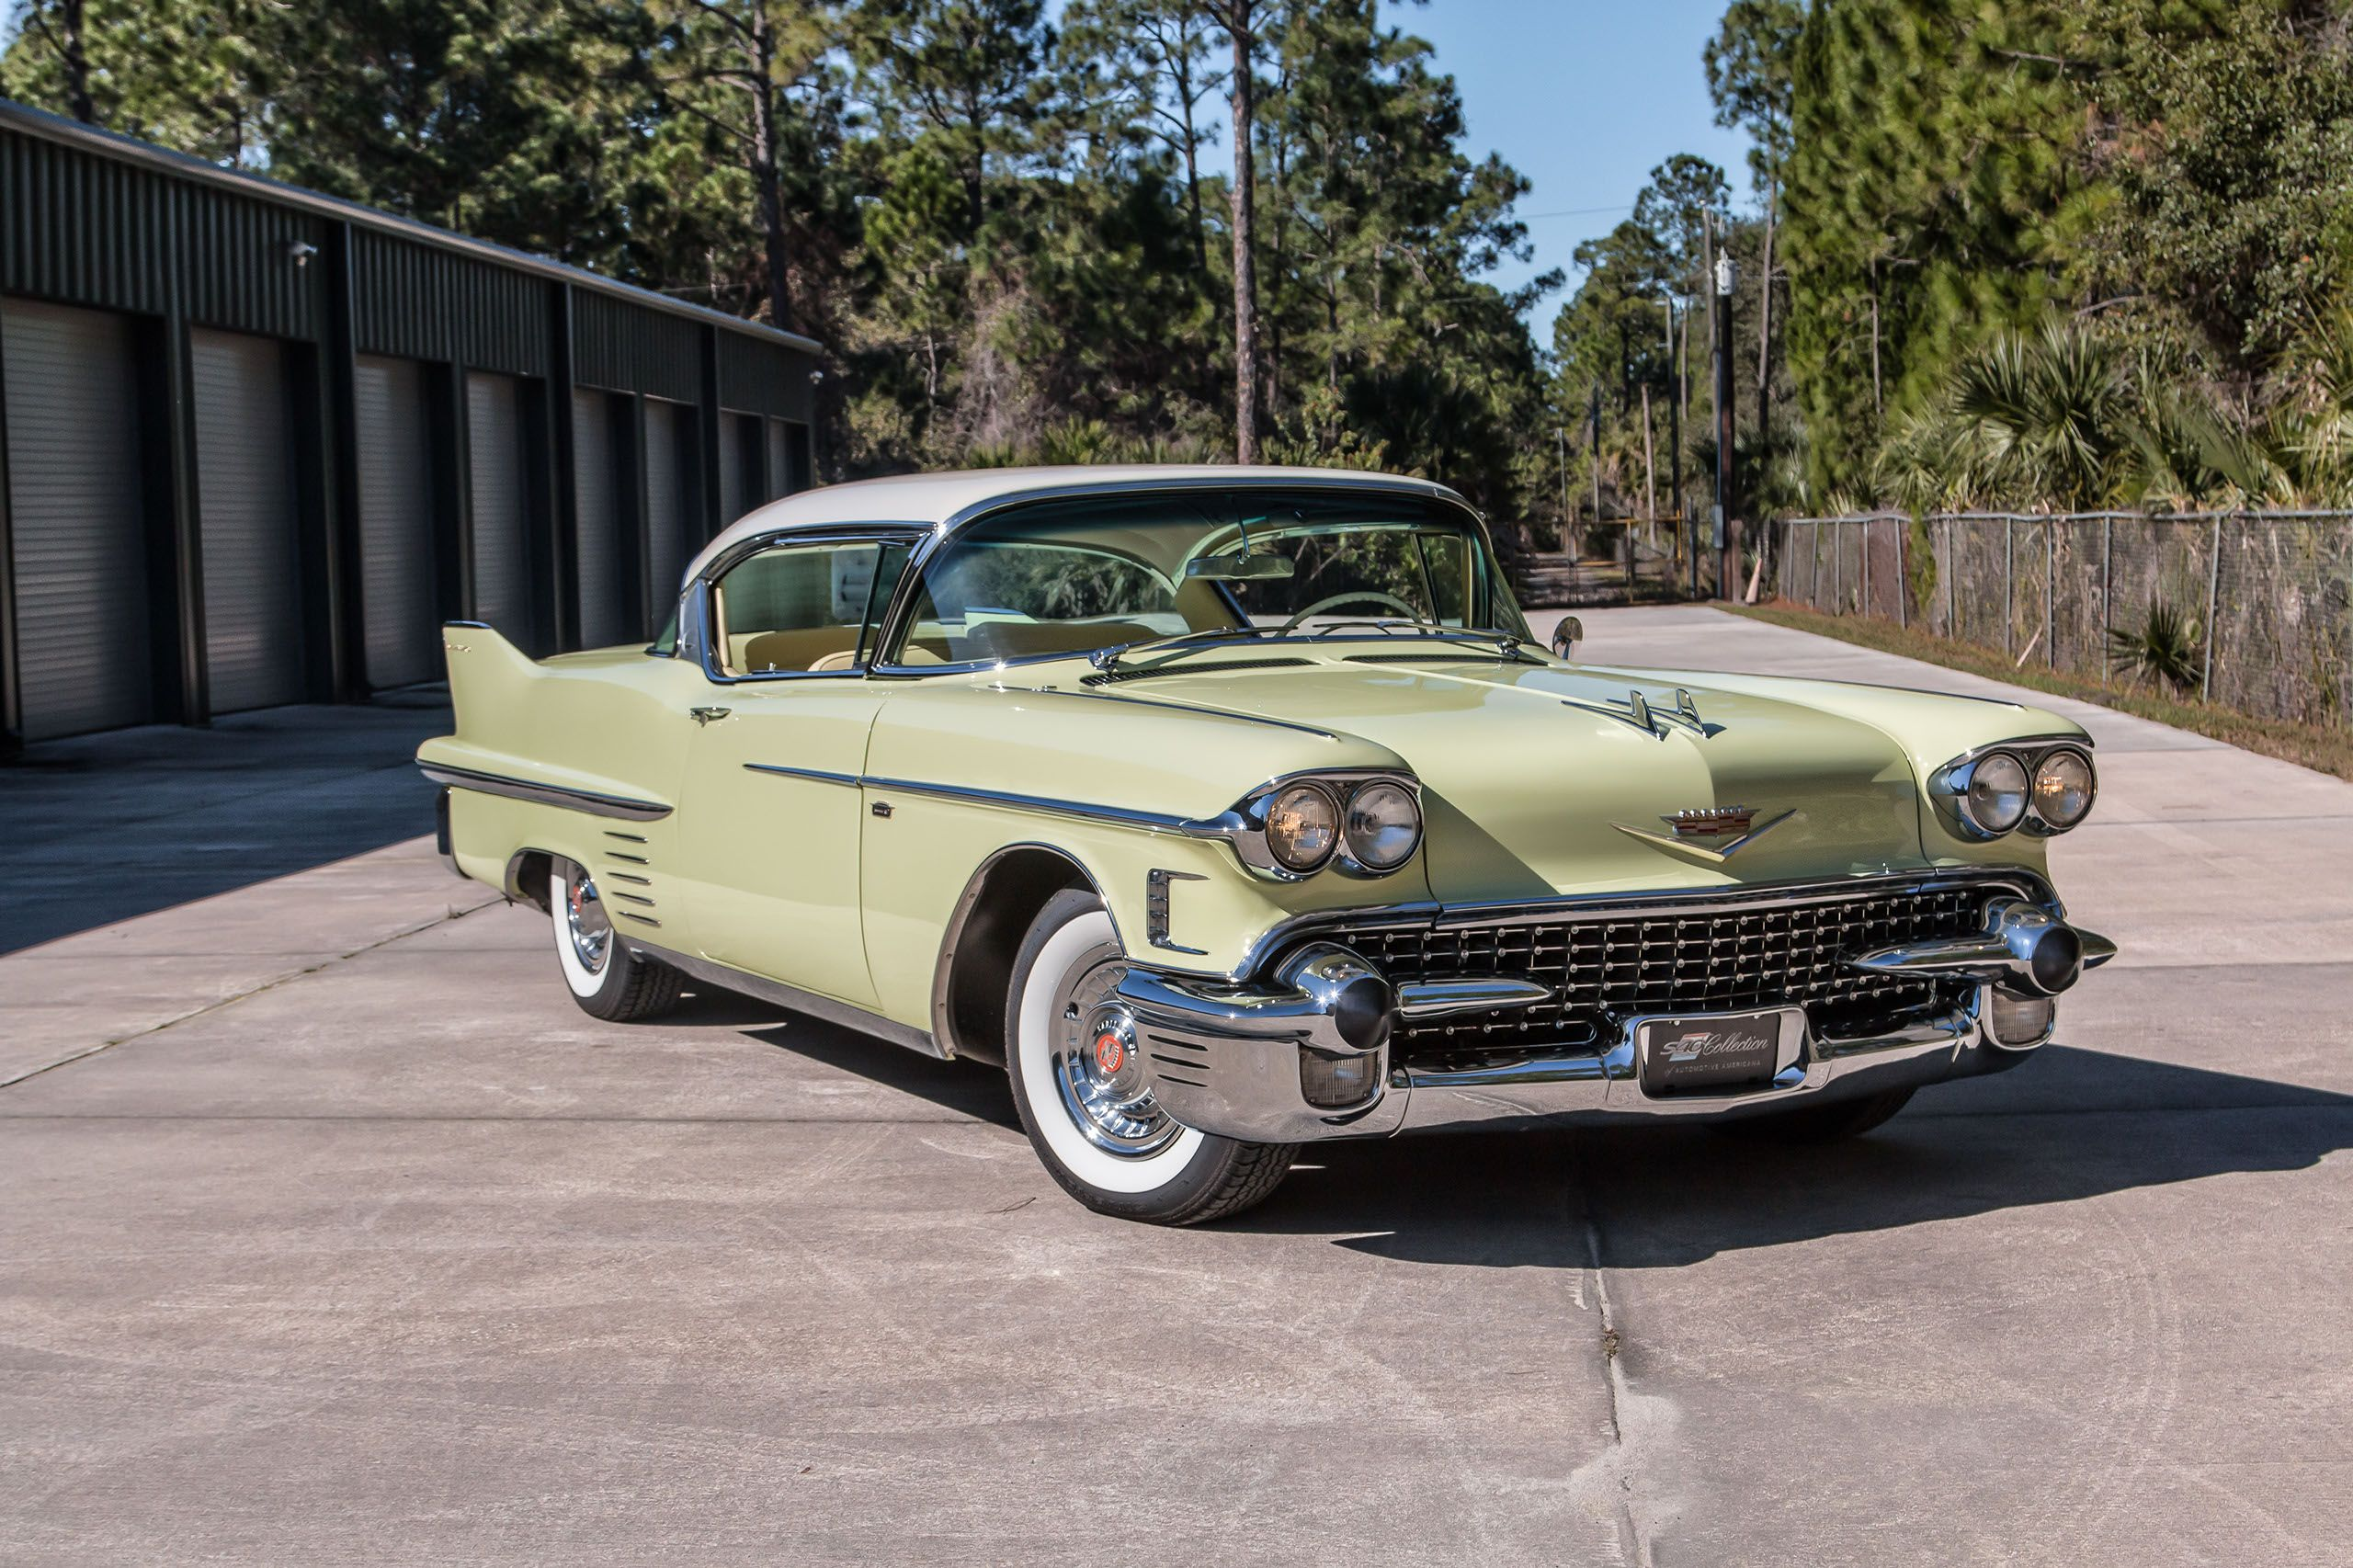 58 CADILLAC COUPE DEVILLE | motor way | Pinterest | Cadillac, Cars